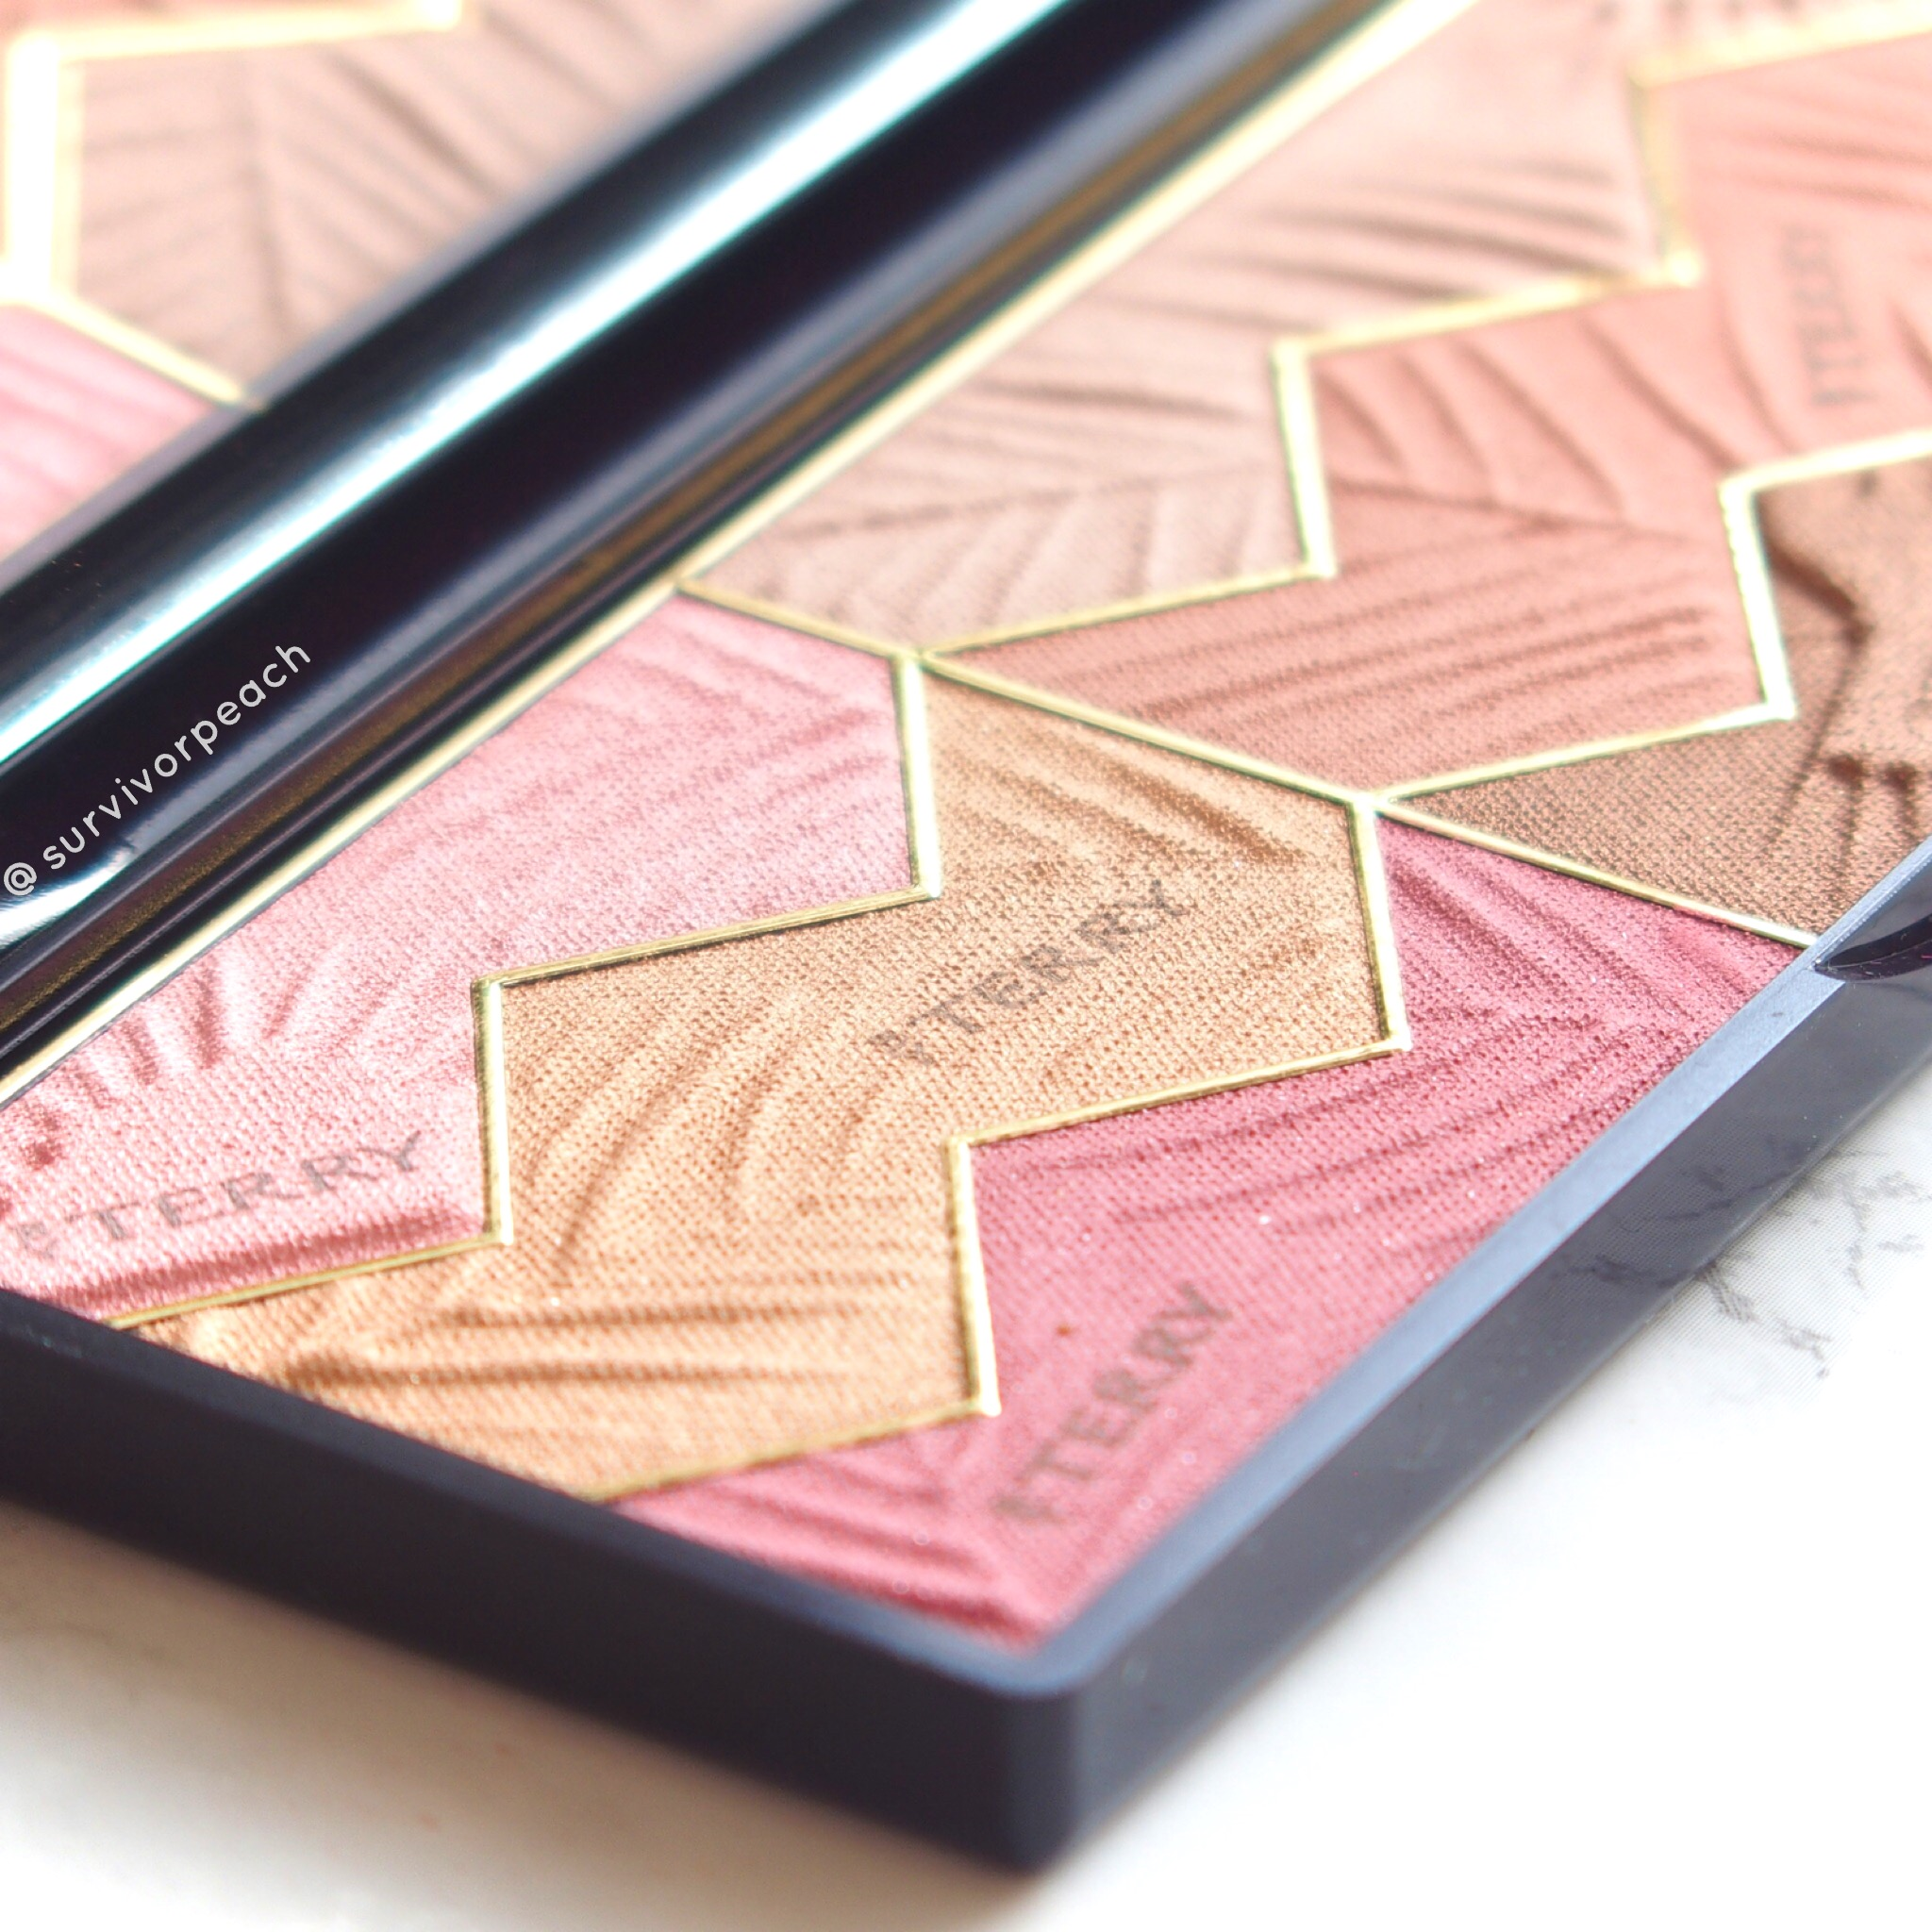 ByTerry Sun Designer palette Savannah Love